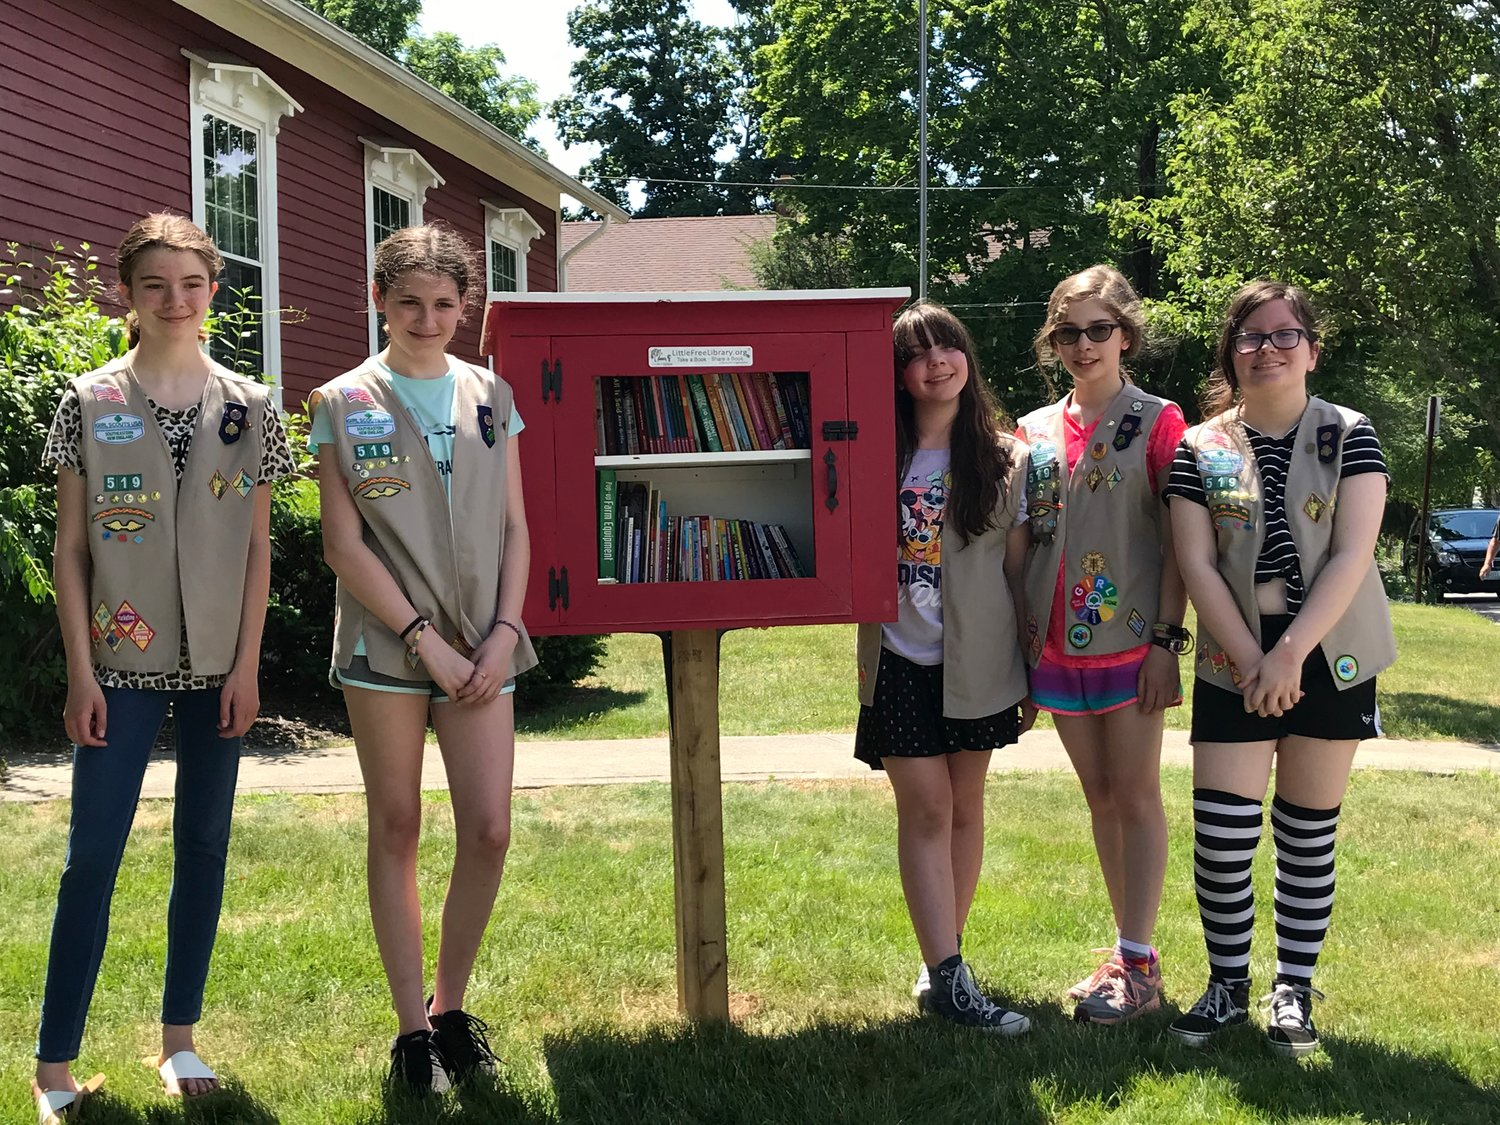 Members of East Providence Troop 519 are shown standing next to the Little Free Library they built.  The library is located at the East Providence Scout House, 351 Willett Avenue in Riverside.  It's a wonderful way to provide access to free books to local family and friends while promoting the Girl Scout way of making the World a Better Place.